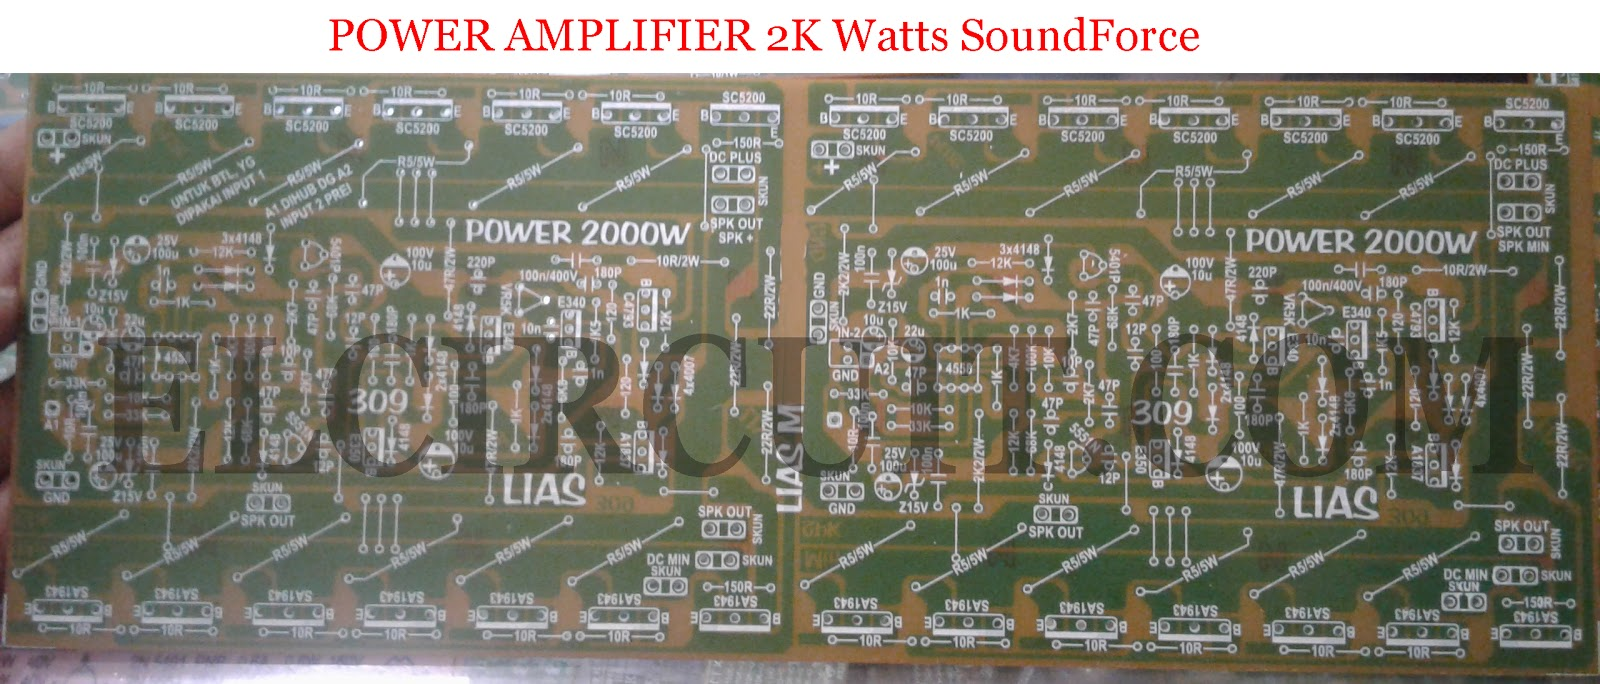 2000w Power Amplifier Circuit Complete Pcb Layout Electronic Gain Control Diagram Amplifiercircuit Design For Top And Bottom Layer